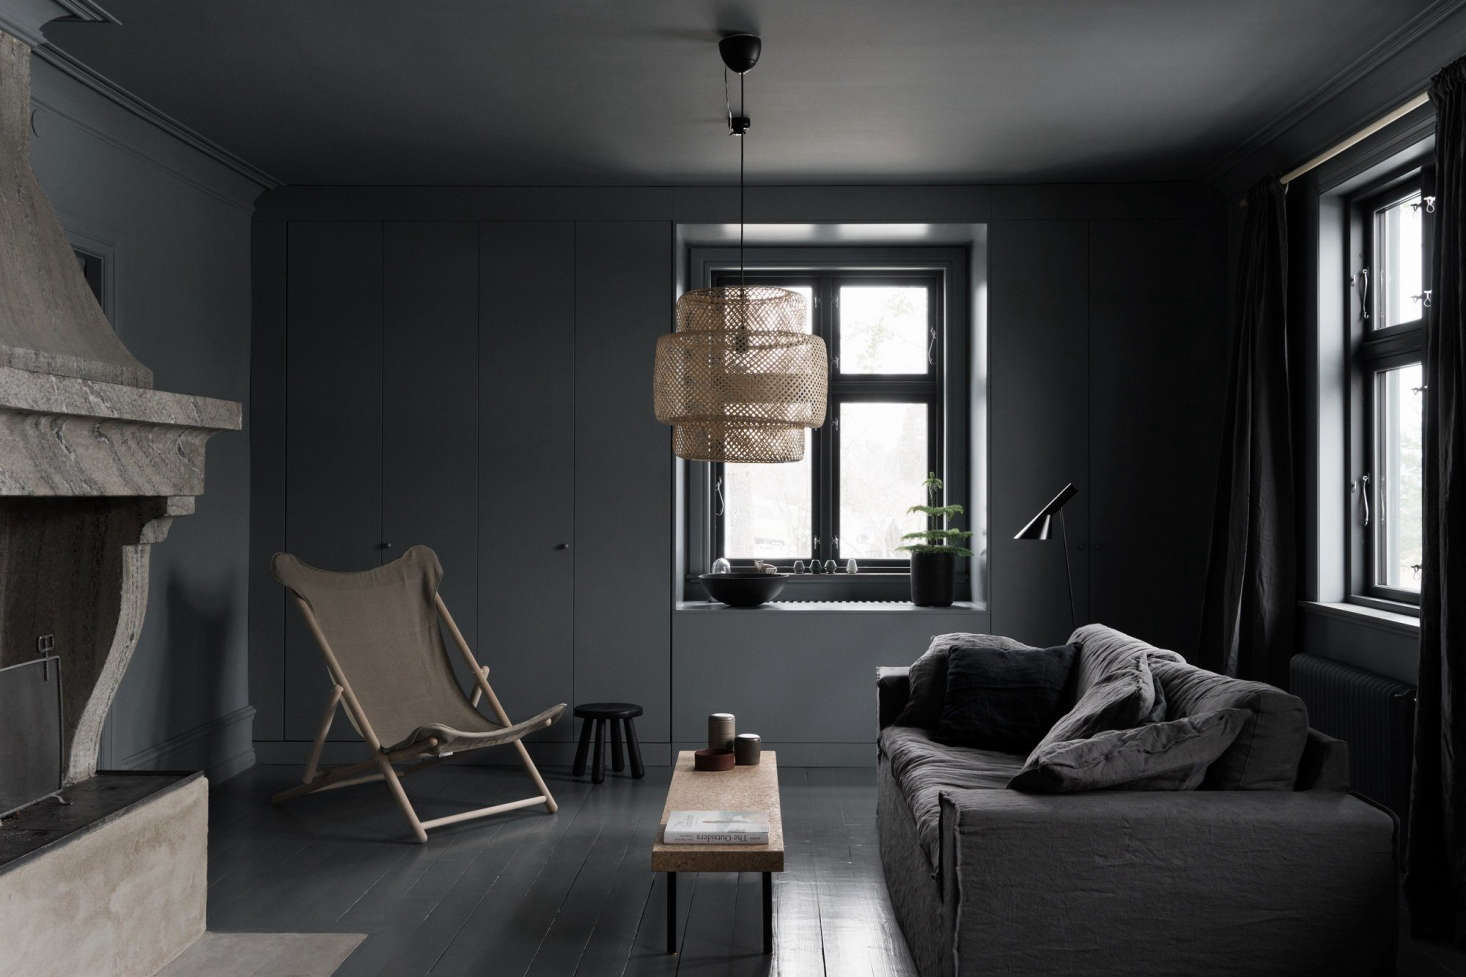 Dark Gray Paint Surrounds The Living Room From A Painted Wood Floor To Walls